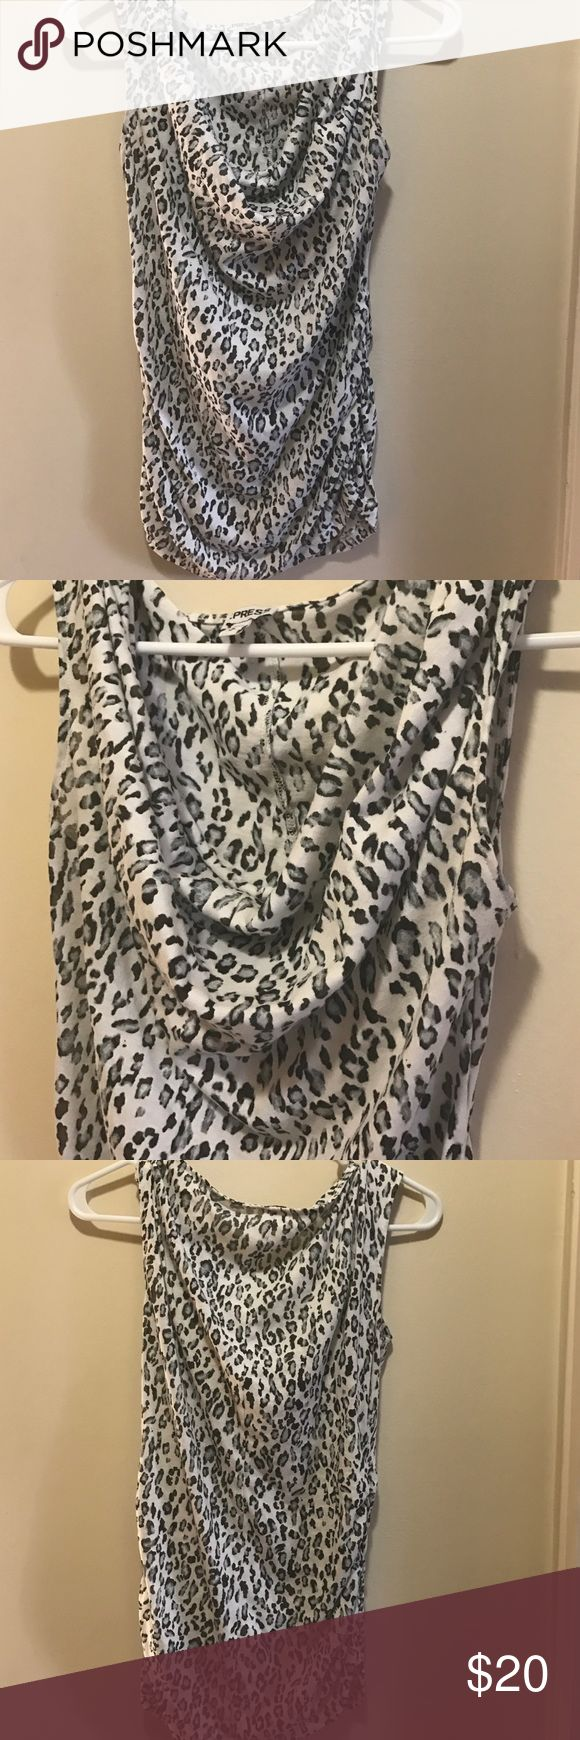 Gorgeous snow leopard print shirt blue white black Cute snow leopard print top draping neck sleeveless great for work or night out Express Tops Tees - Short Sleeve